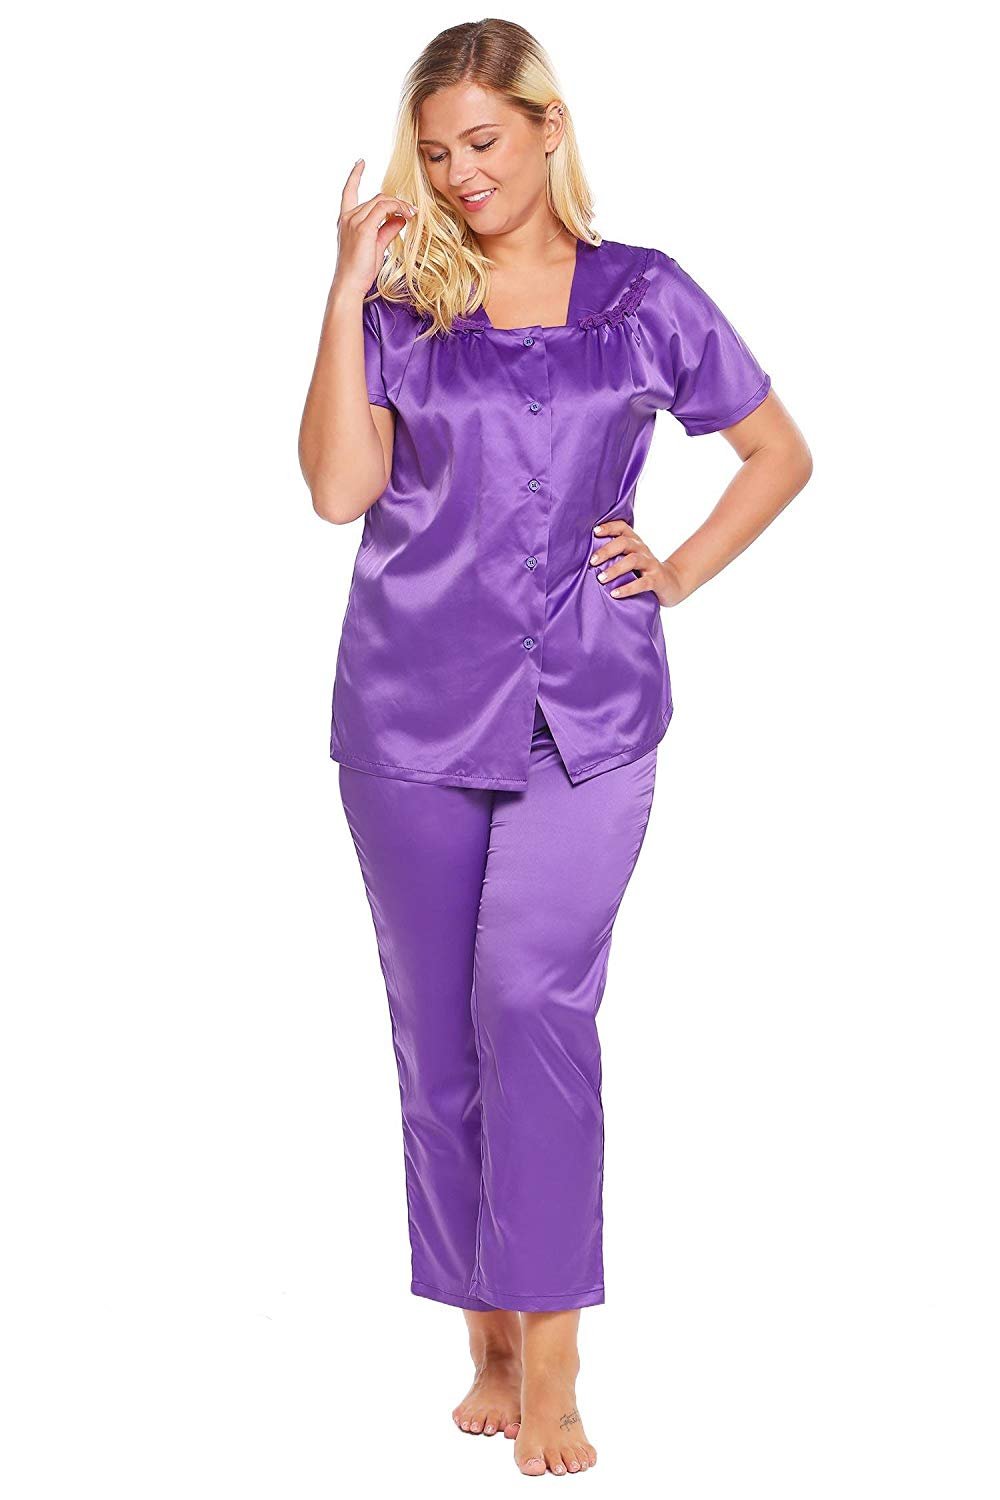 b77f1abd02 Get Quotations · Langle Womens Plus Size Pajamas Tops and Pants Sets Short Sleeves  Nightgowns L-4XL